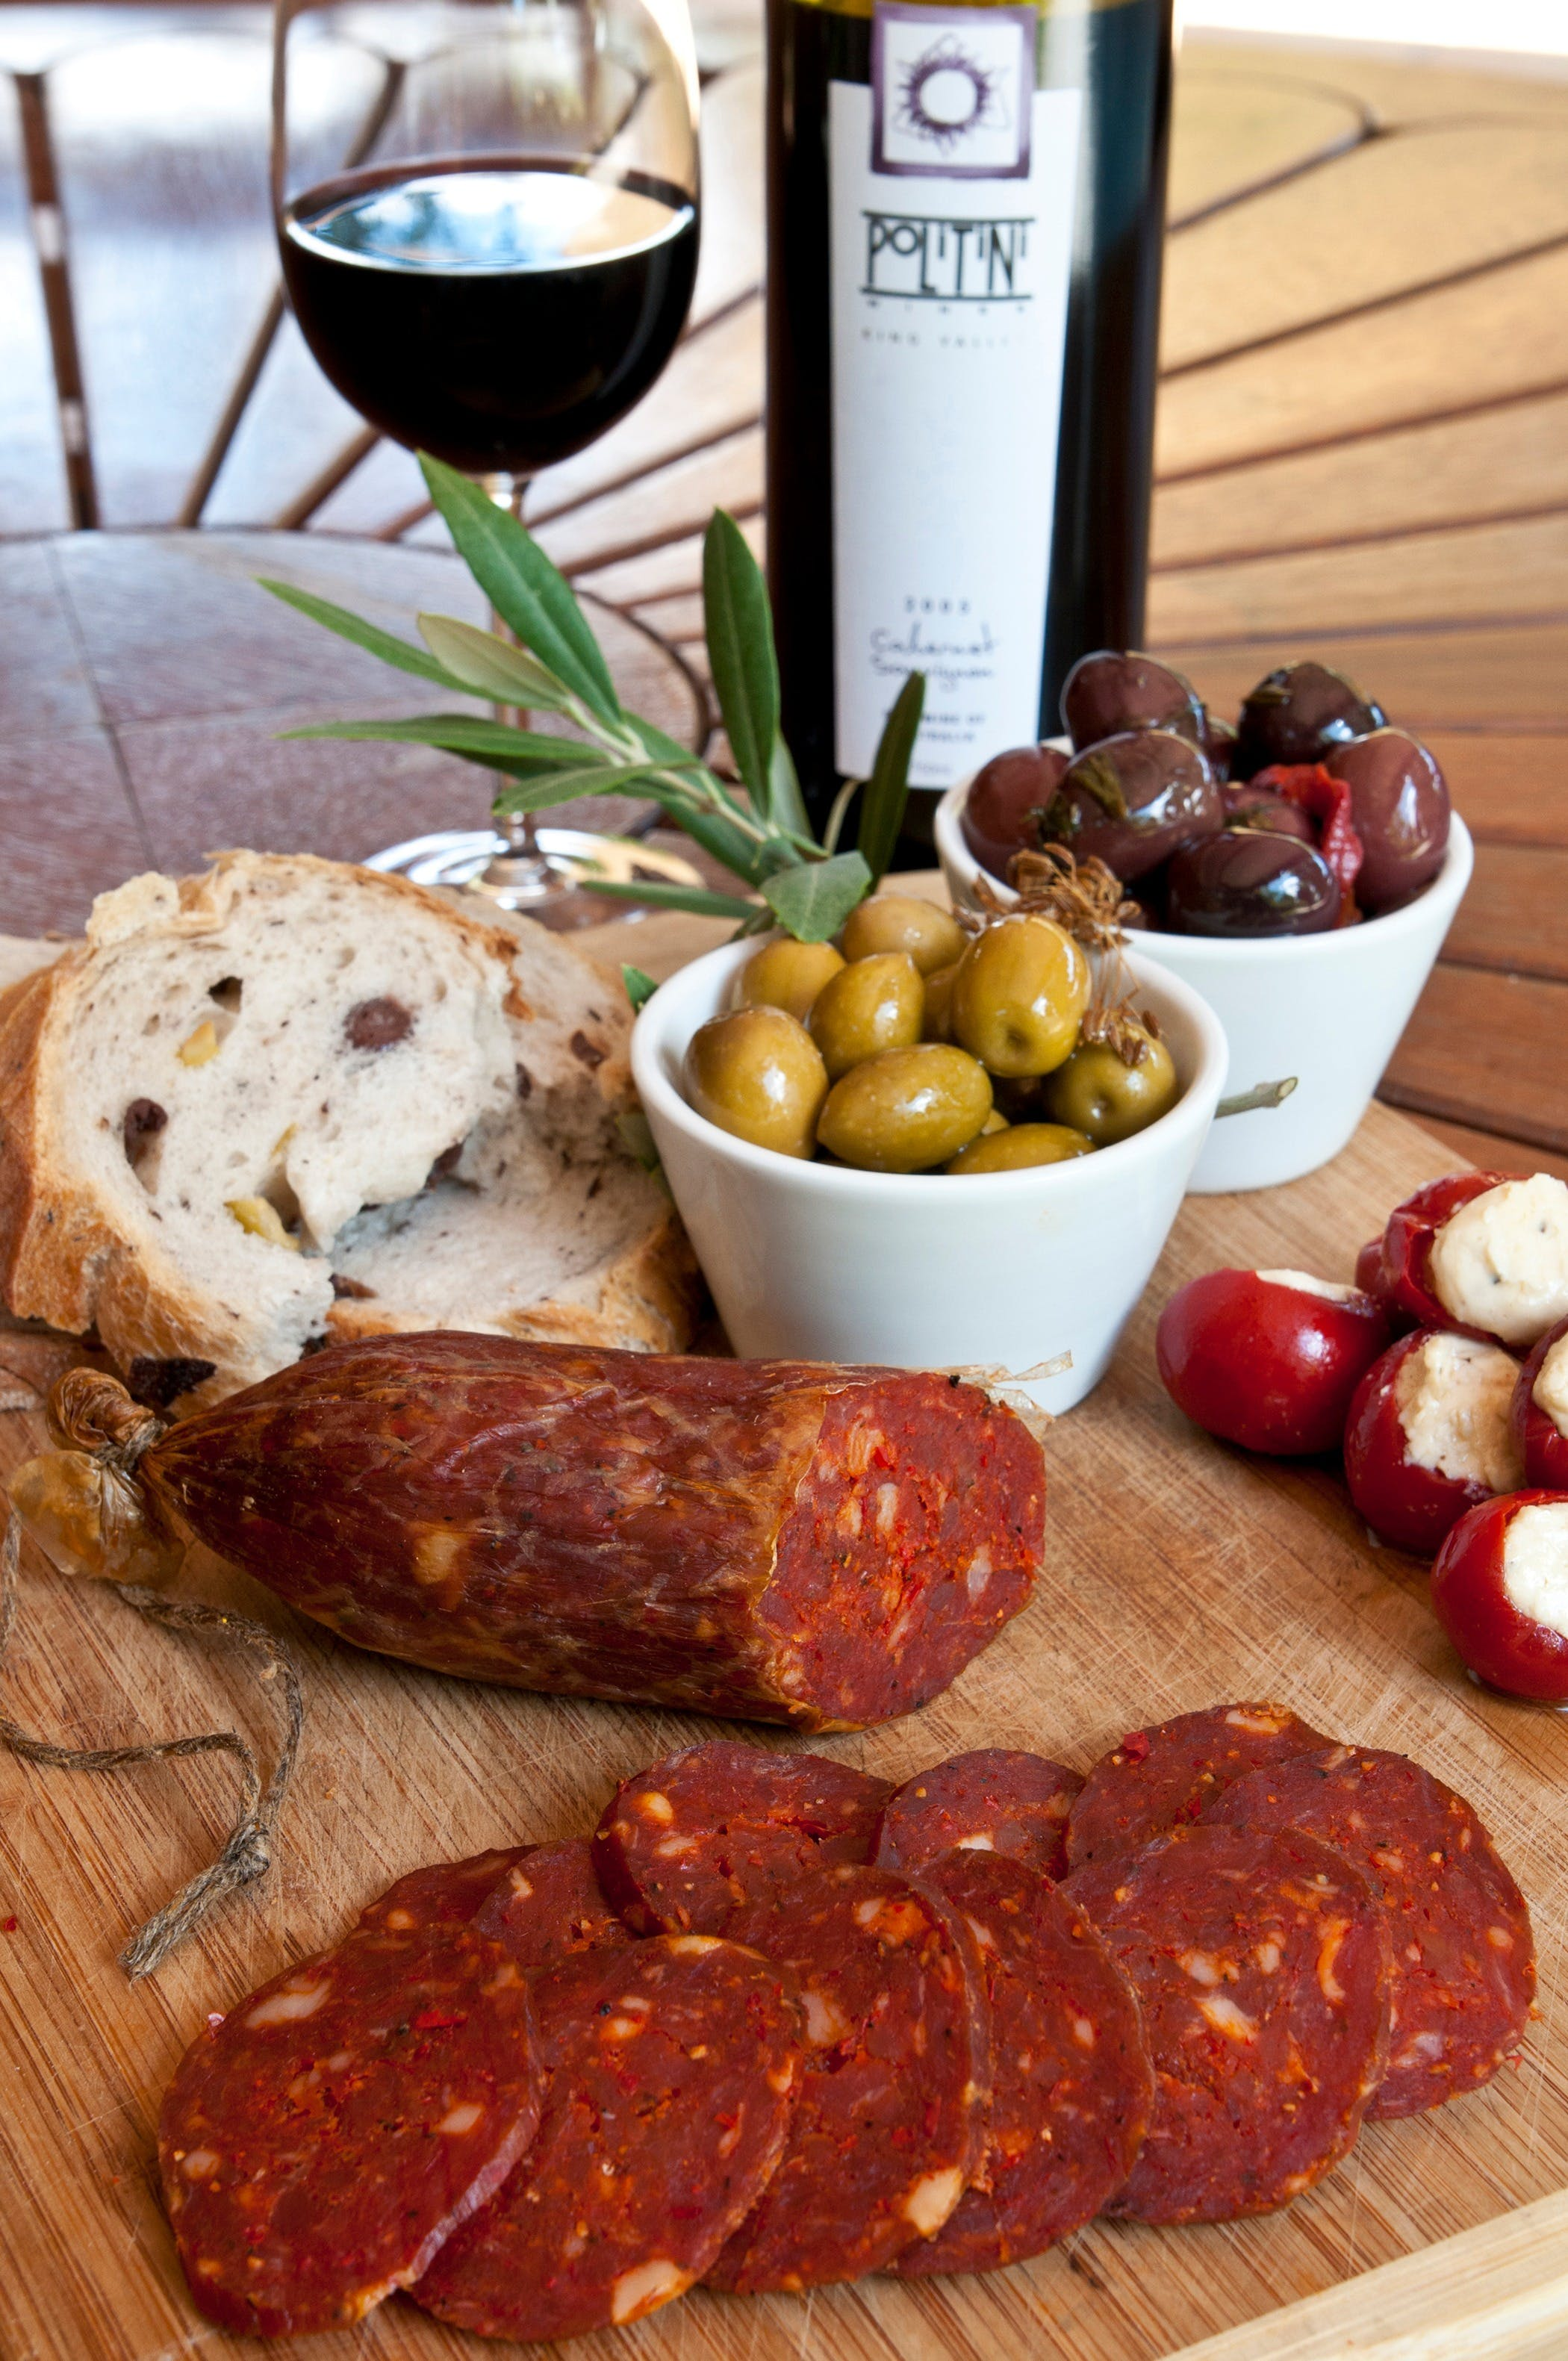 Salami and Salsicce Making classes at Politini Wines - Accommodation Tasmania